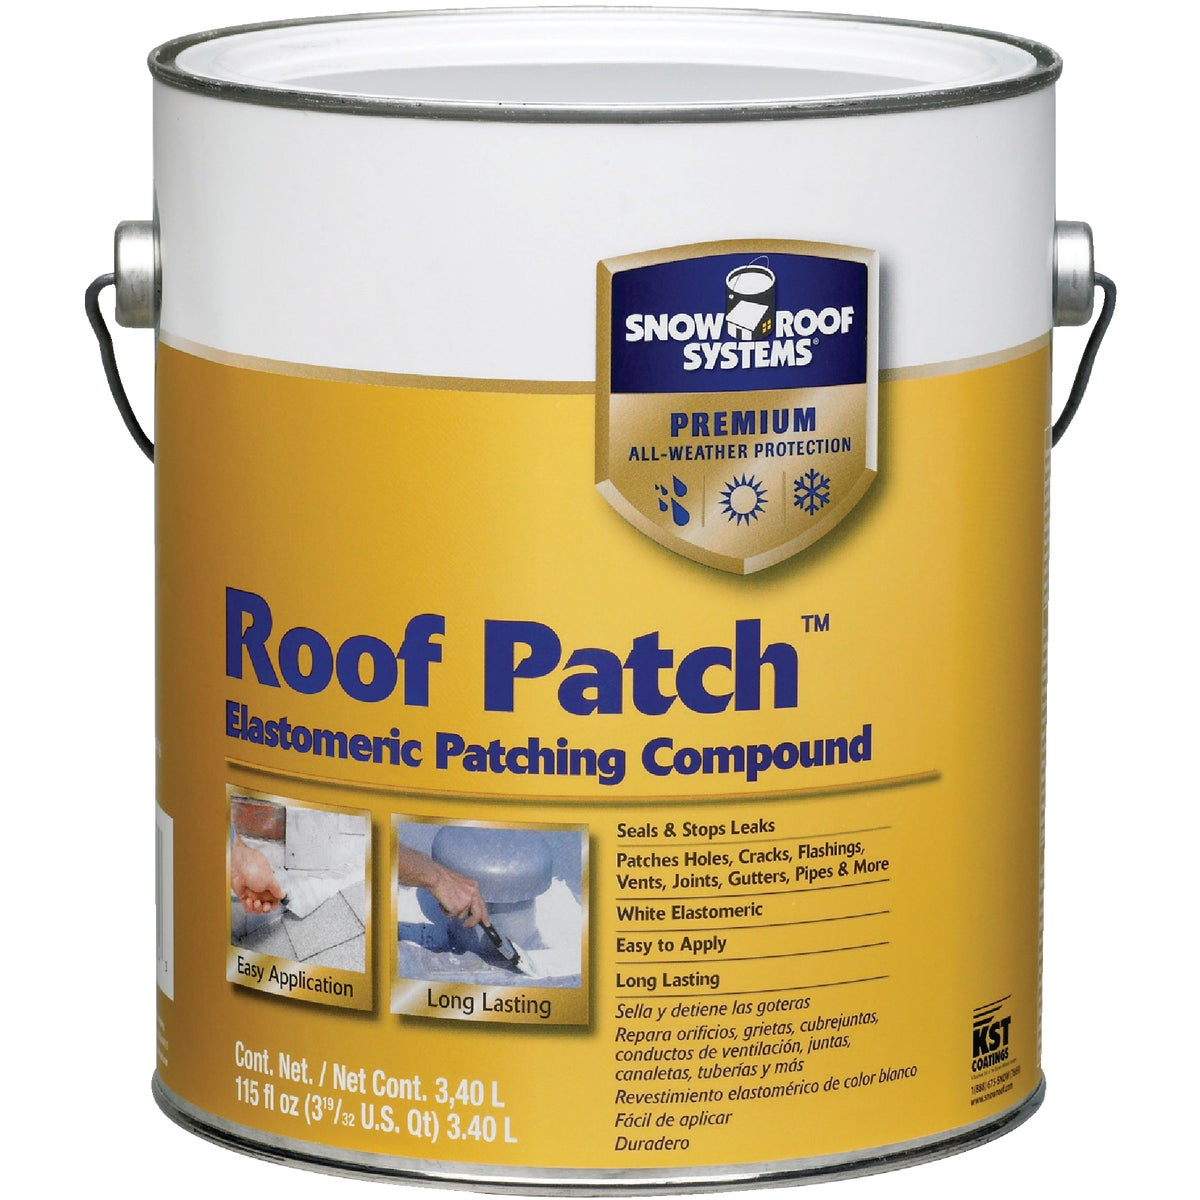 GAL ROOF PATCH - RPTW-1 by Snow Roof